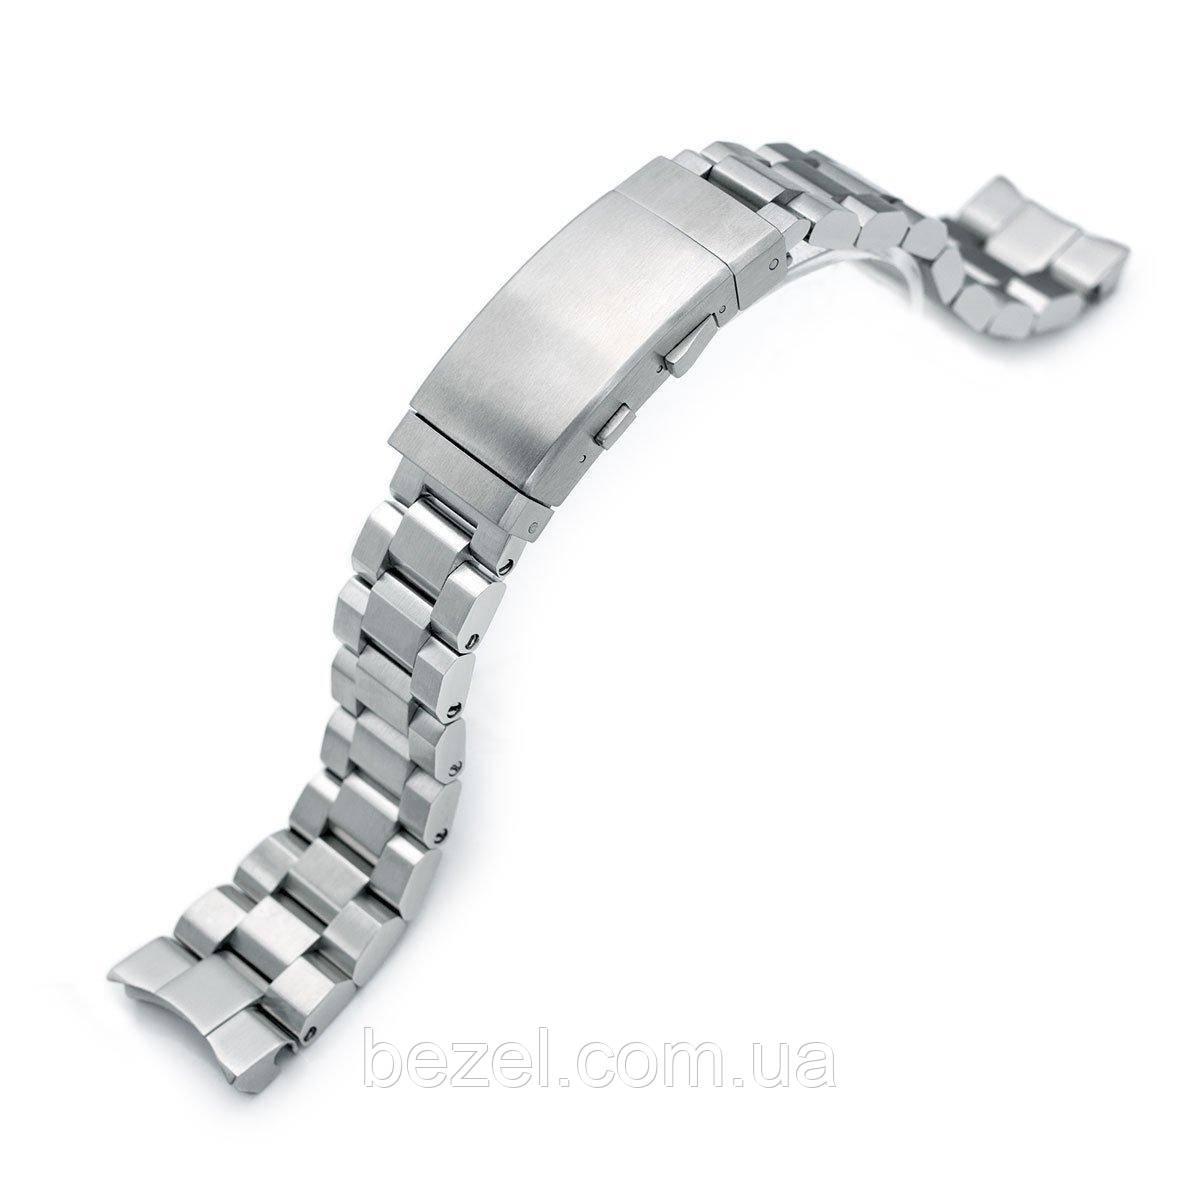 22mm Hexad Oyster 316L Stainless Steel Watch Band for Seiko Samurai SRPB51, Wetsuit Ratchet Buckle